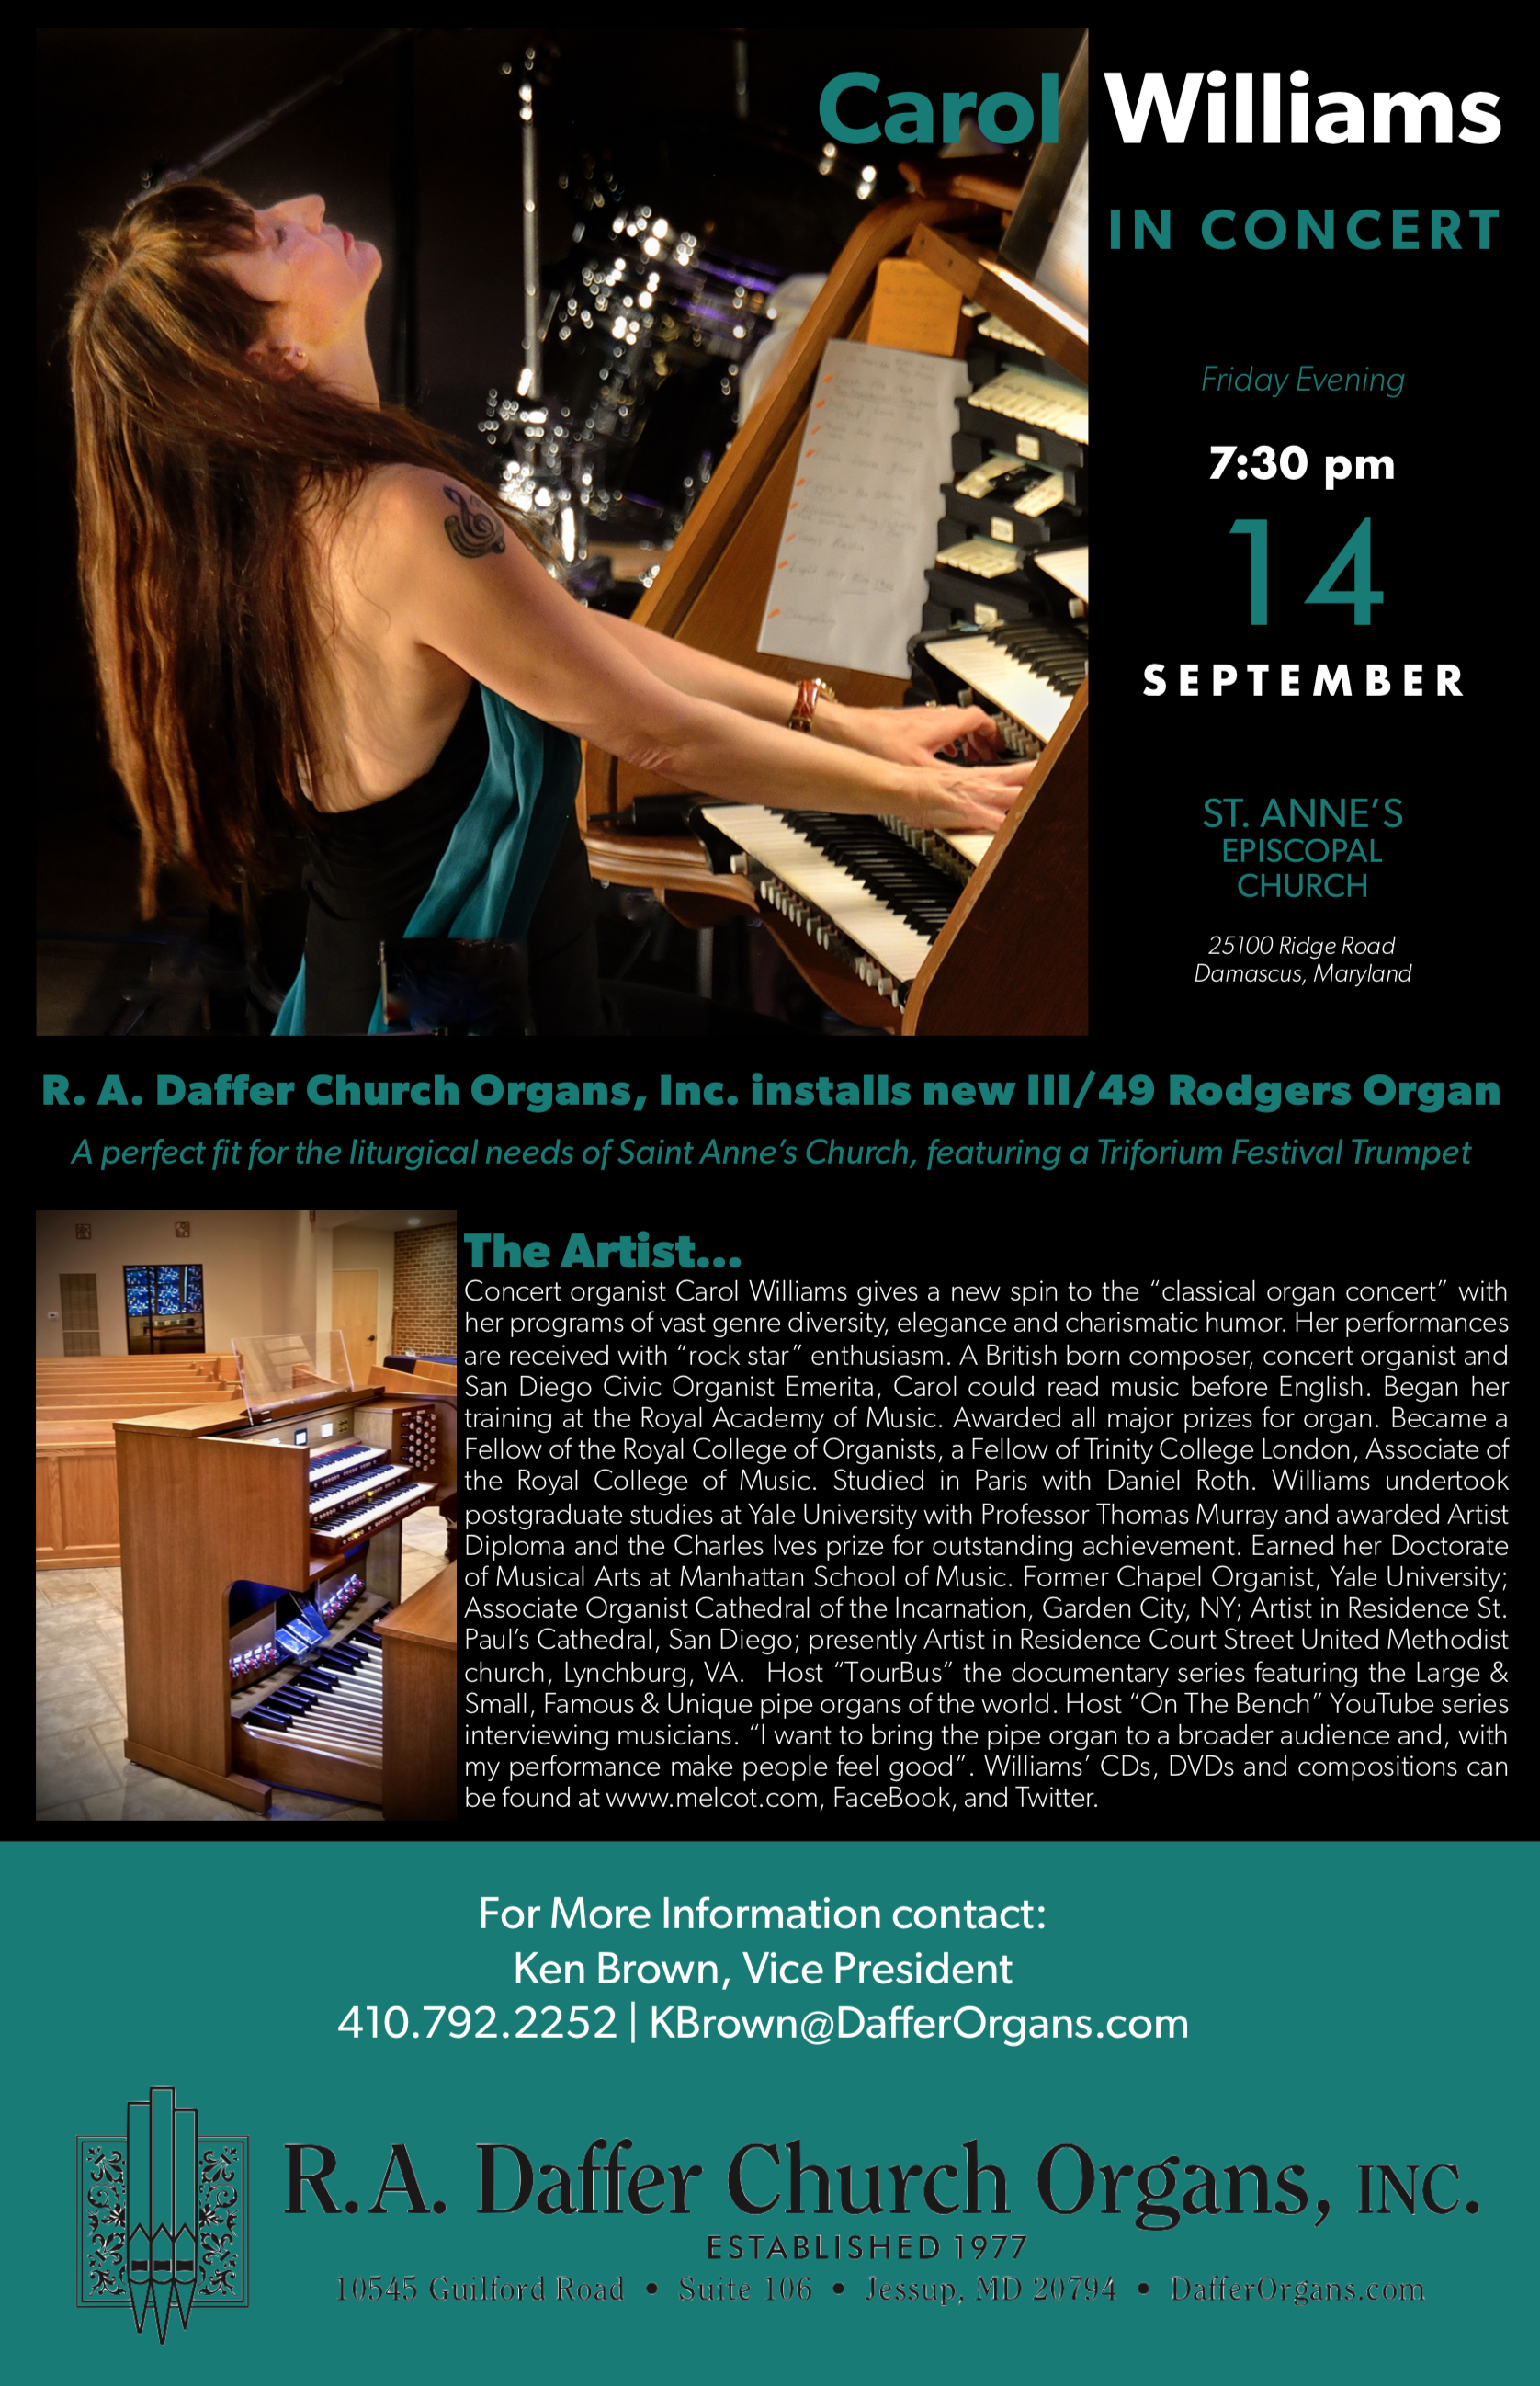 Carol Williams In Concert Ra Daffer Church Organs Perfect Fit Iii September 14 730 Pm 930